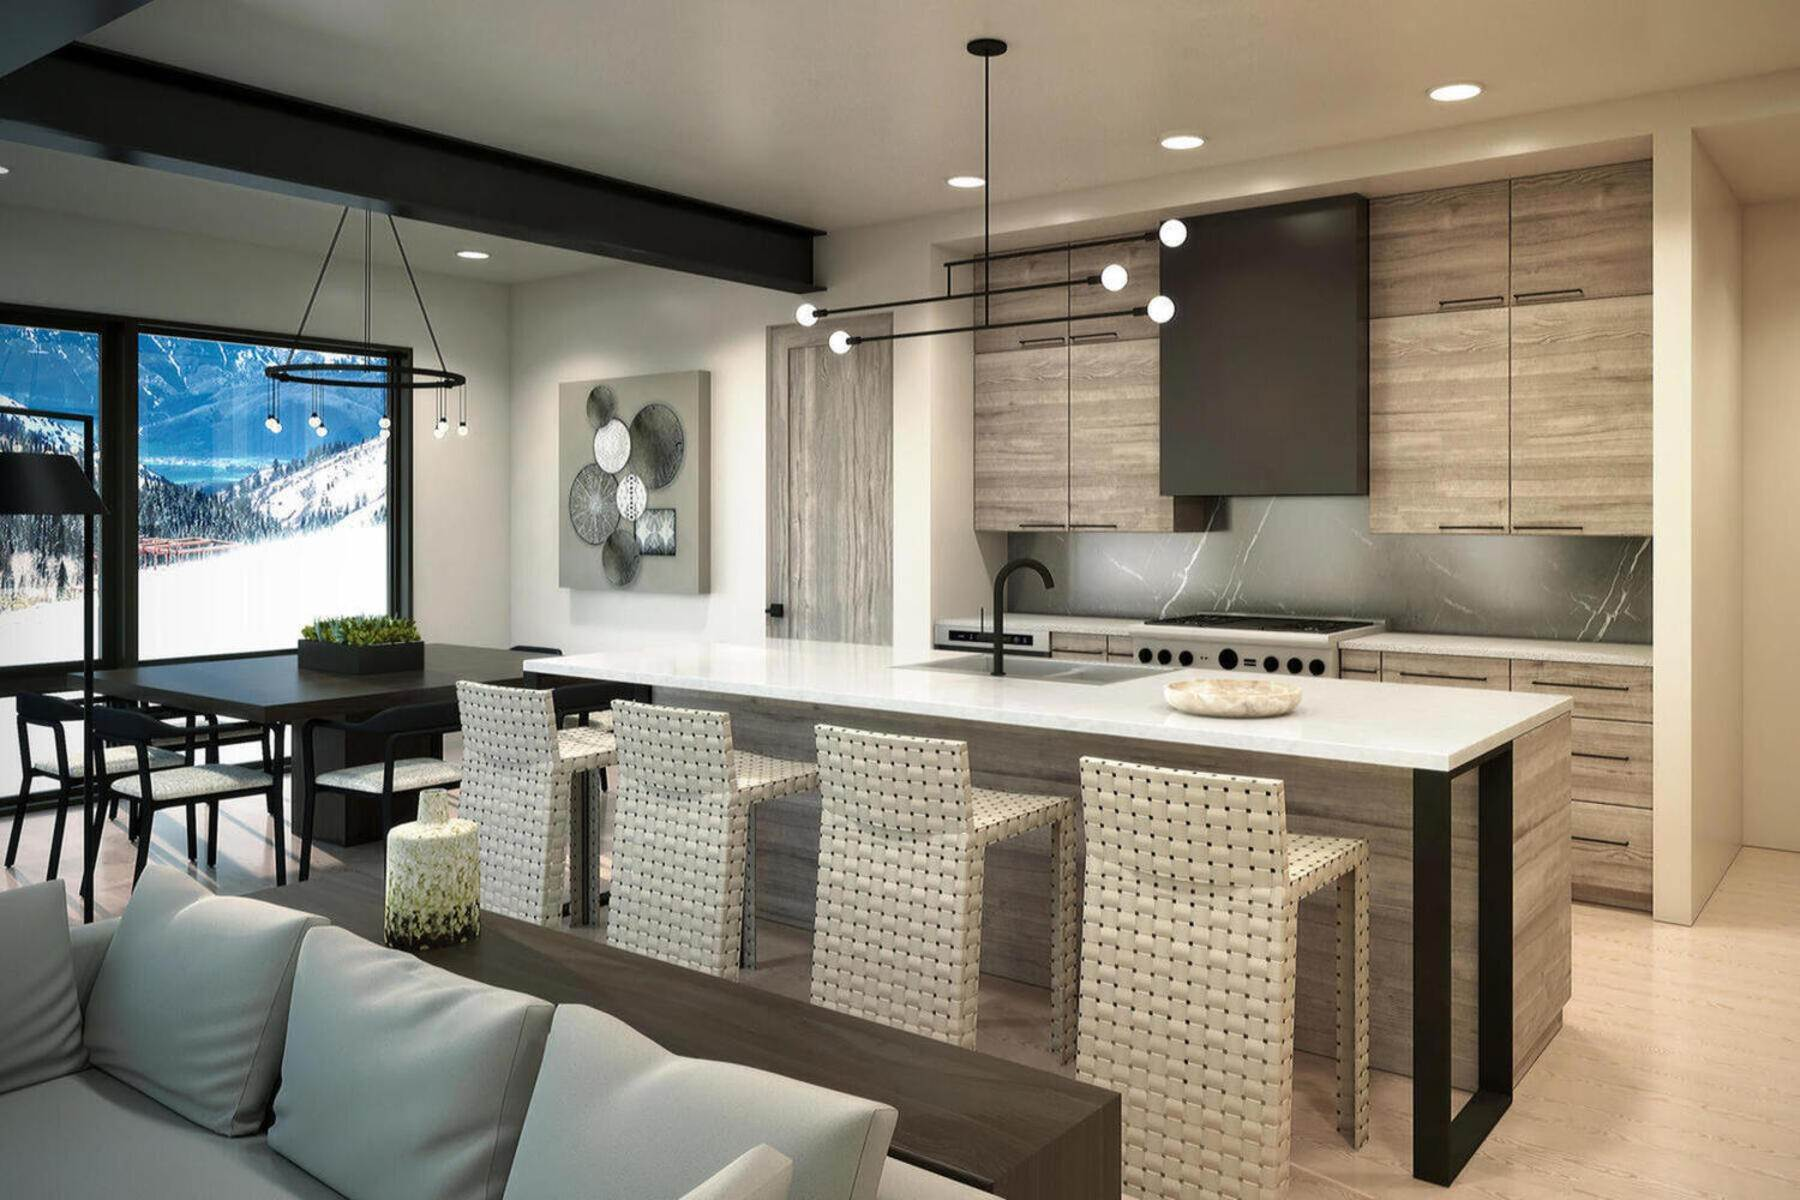 6. townhouses for Sale at Ski In Town Homes in Canyons Village 3478 Ridgeline Drive Park City, Utah 84098 United States